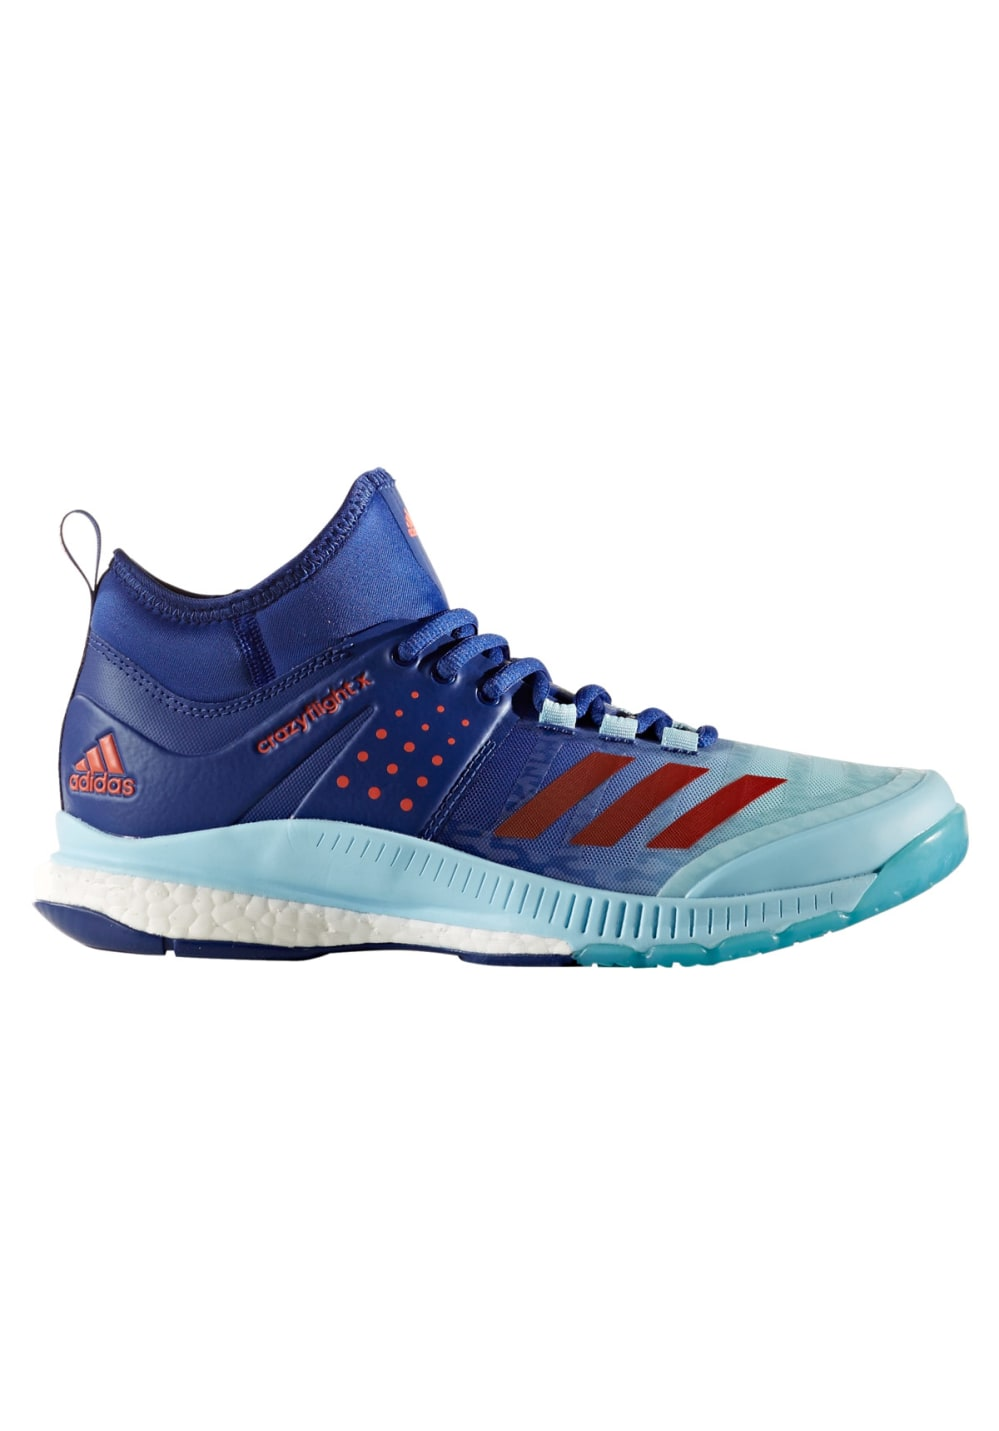 low priced 92451 928f9 ... adidas Crazyflight X Mid - Volleyball shoes for Women - Blue. Back to  Overview. -45%